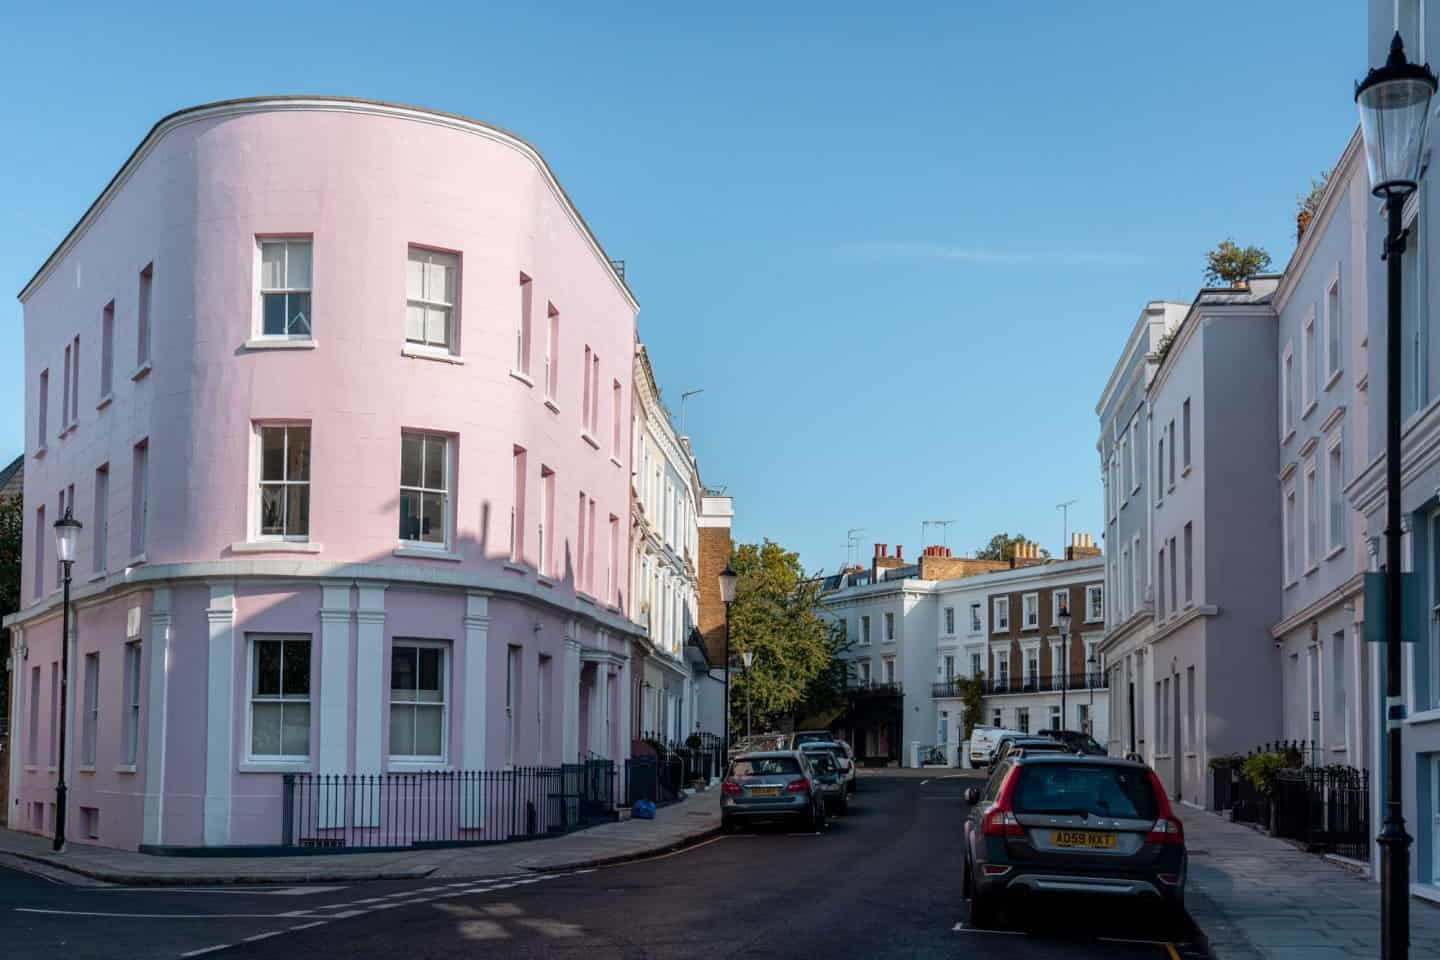 Pink house on the corner of Pottery Lane and Penzance Place